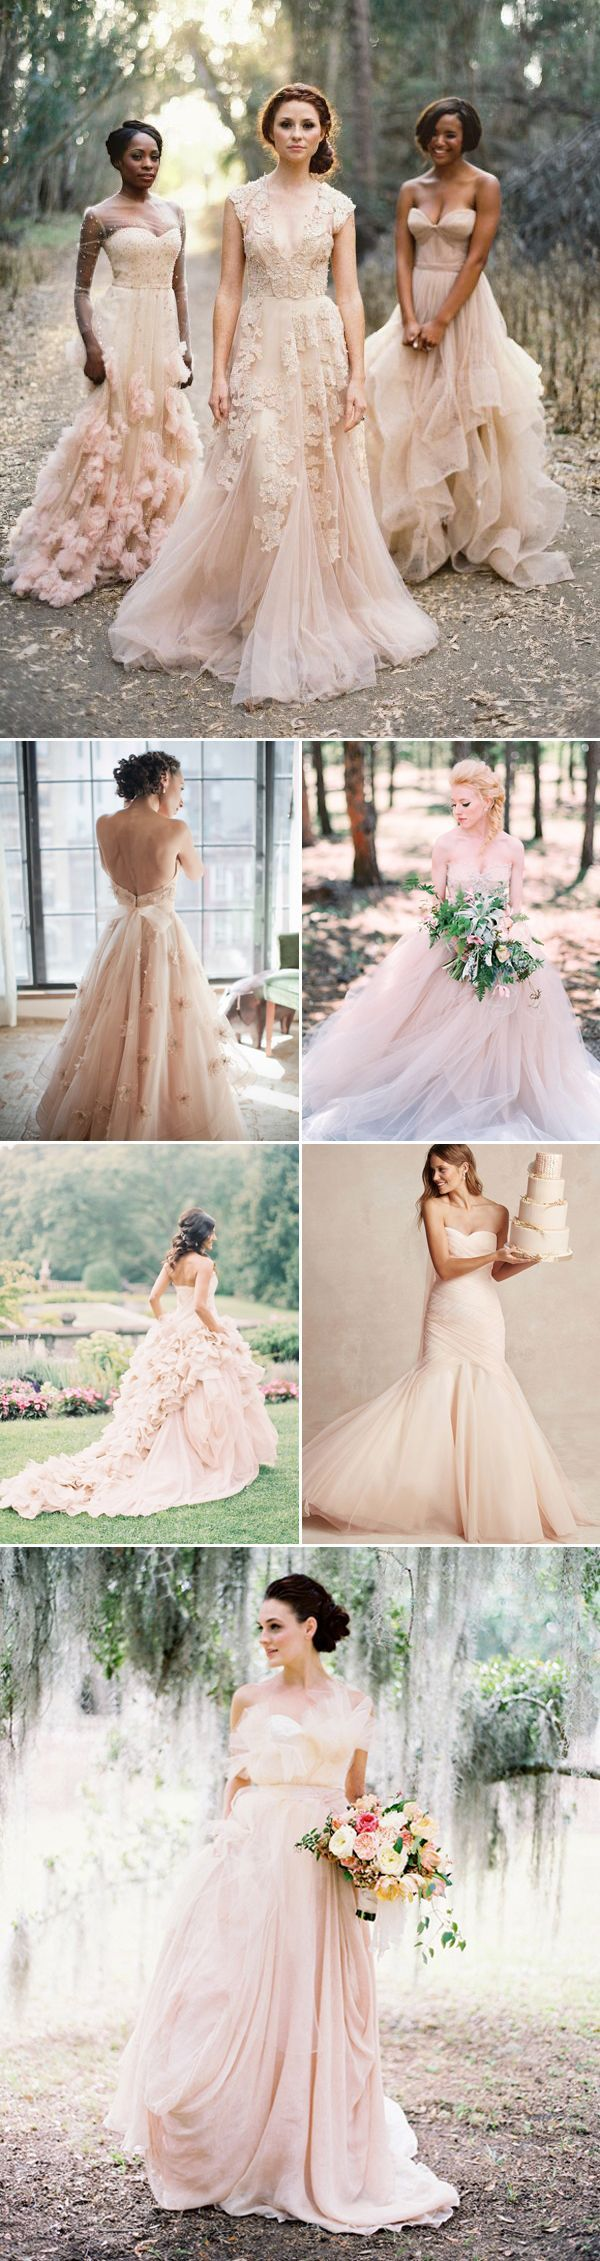 20 Utterly Romantic Blush Wedding Dresses - Whimsical